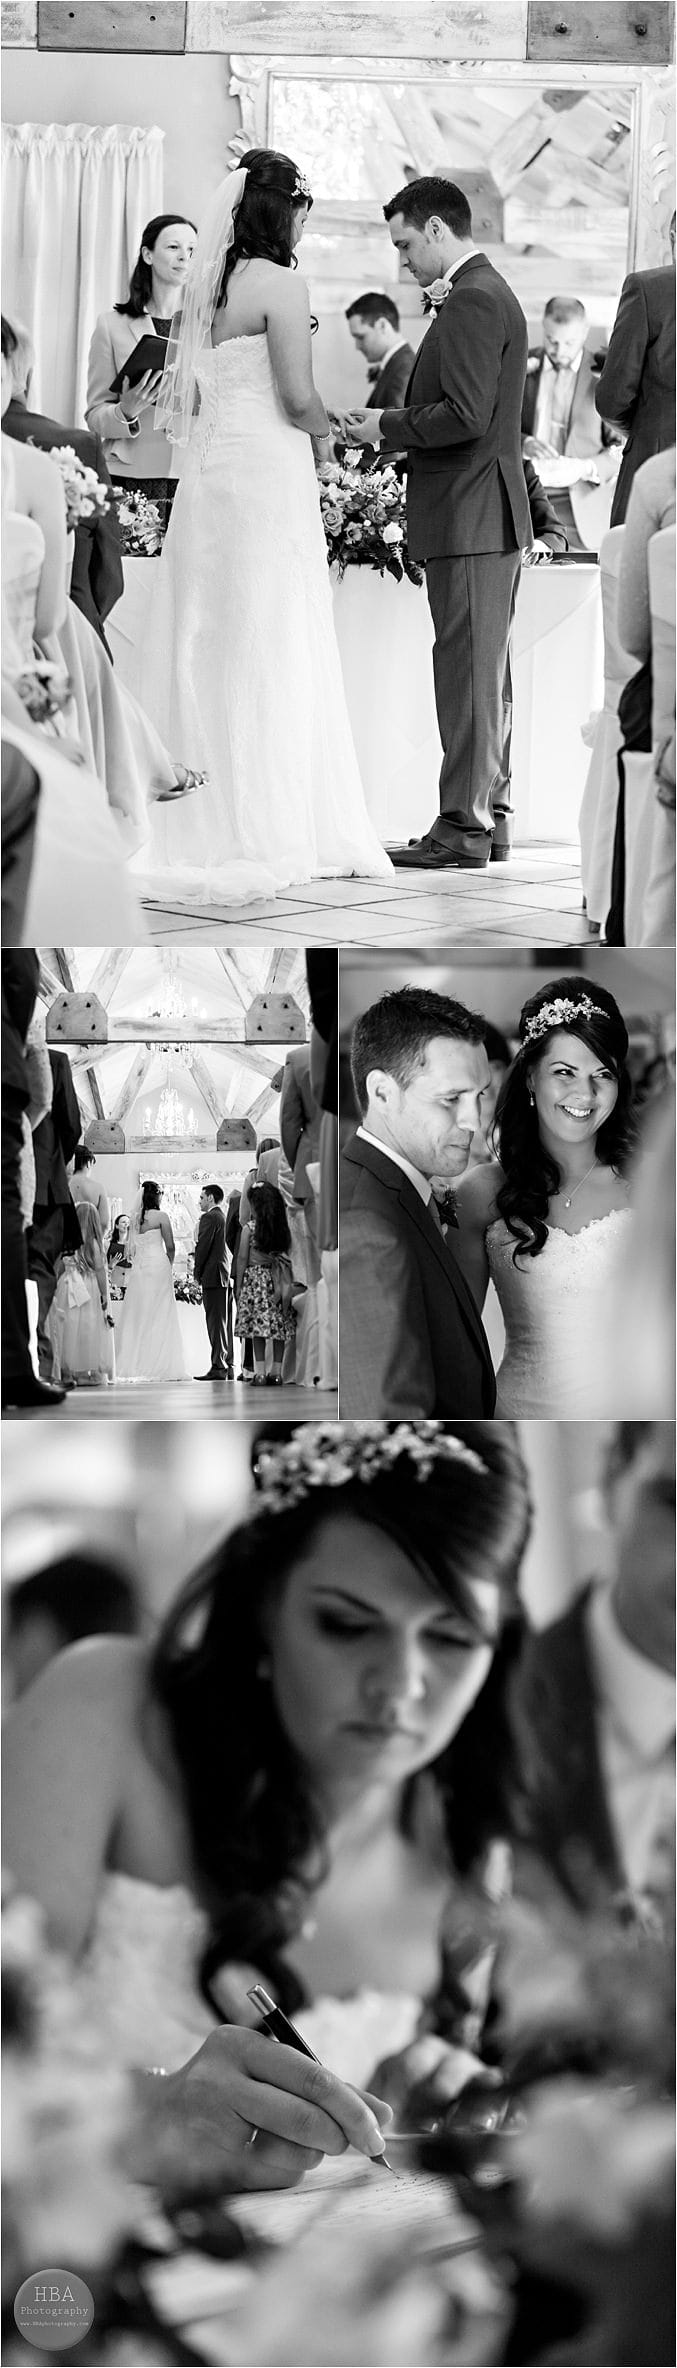 Rachel_and_Joe's_Wedding_photos_at_Cockcliffe_House_by_HBA_Photography_Page__0010